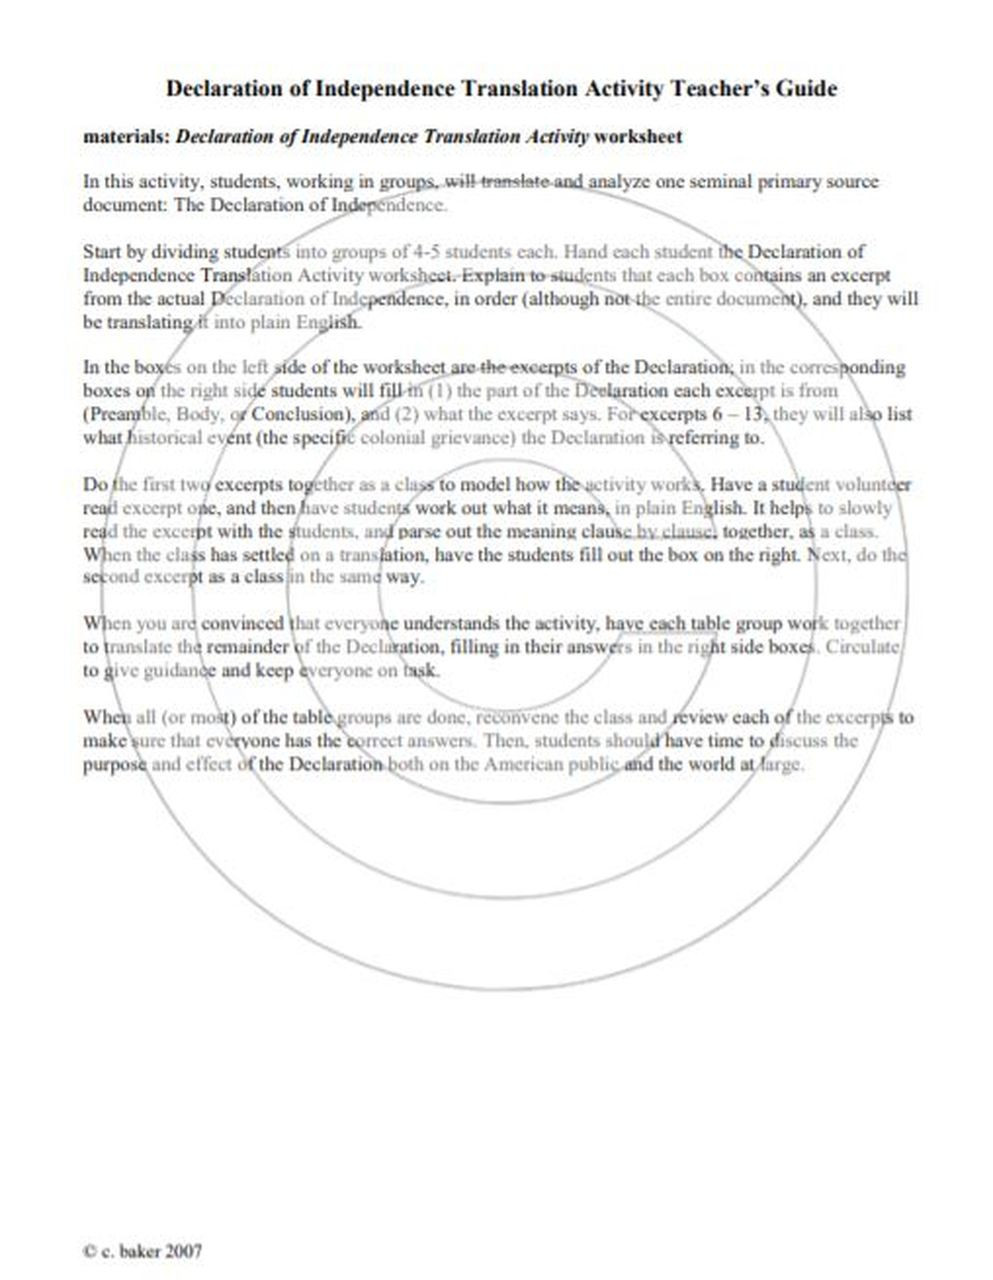 Declaration Of Independence Worksheet Answers Declaration Of Independence Primary source Translation and Analysis Activity